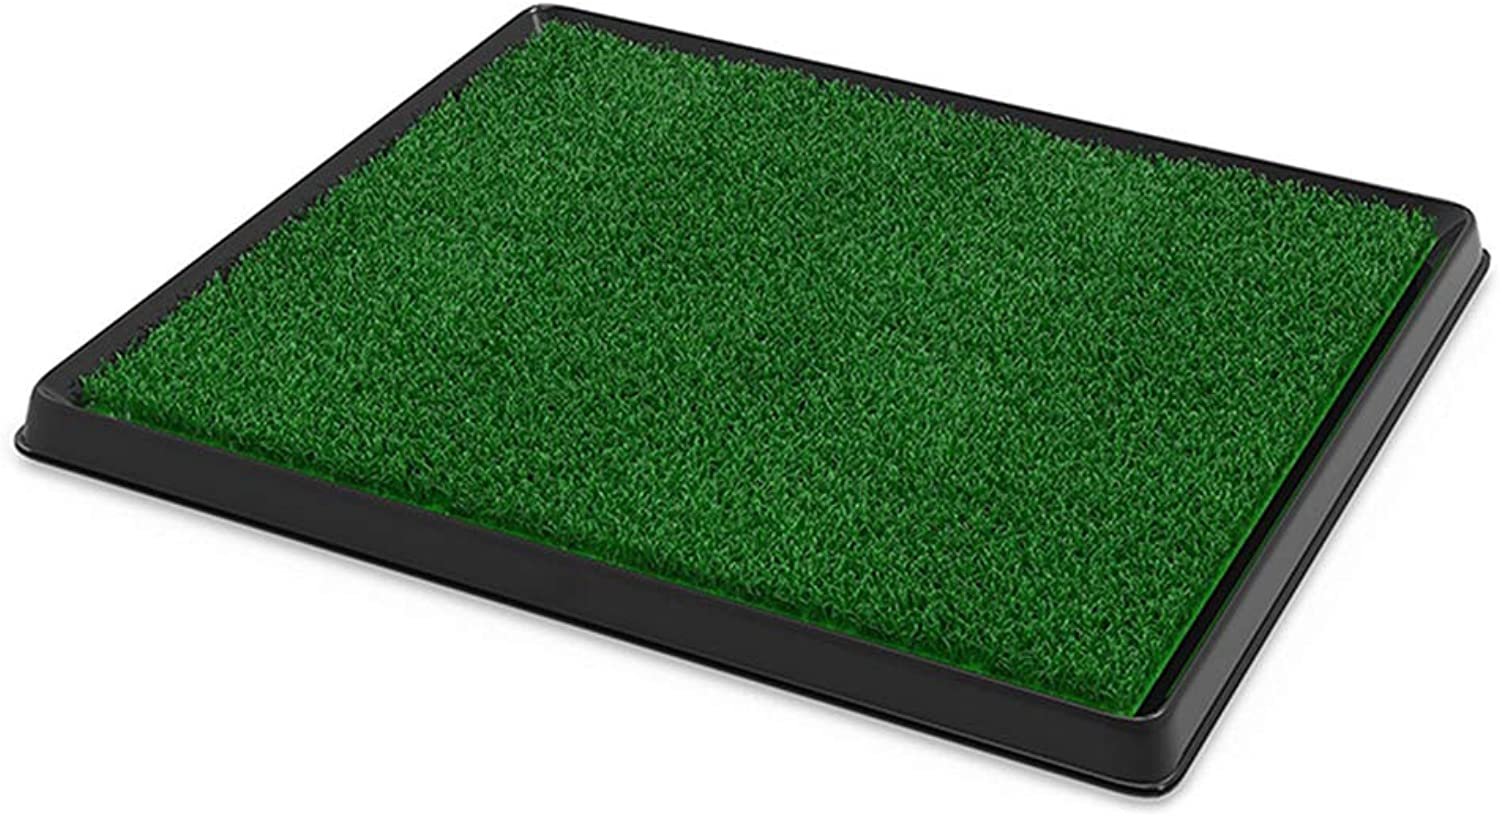 BYCWS The Indoor Restroom for Pets Premium Pet Dog Potty Pee Turf Portable Easy to CleanNon ToxicPuppy Potty Trainer Perfect for Indoor Outdoor